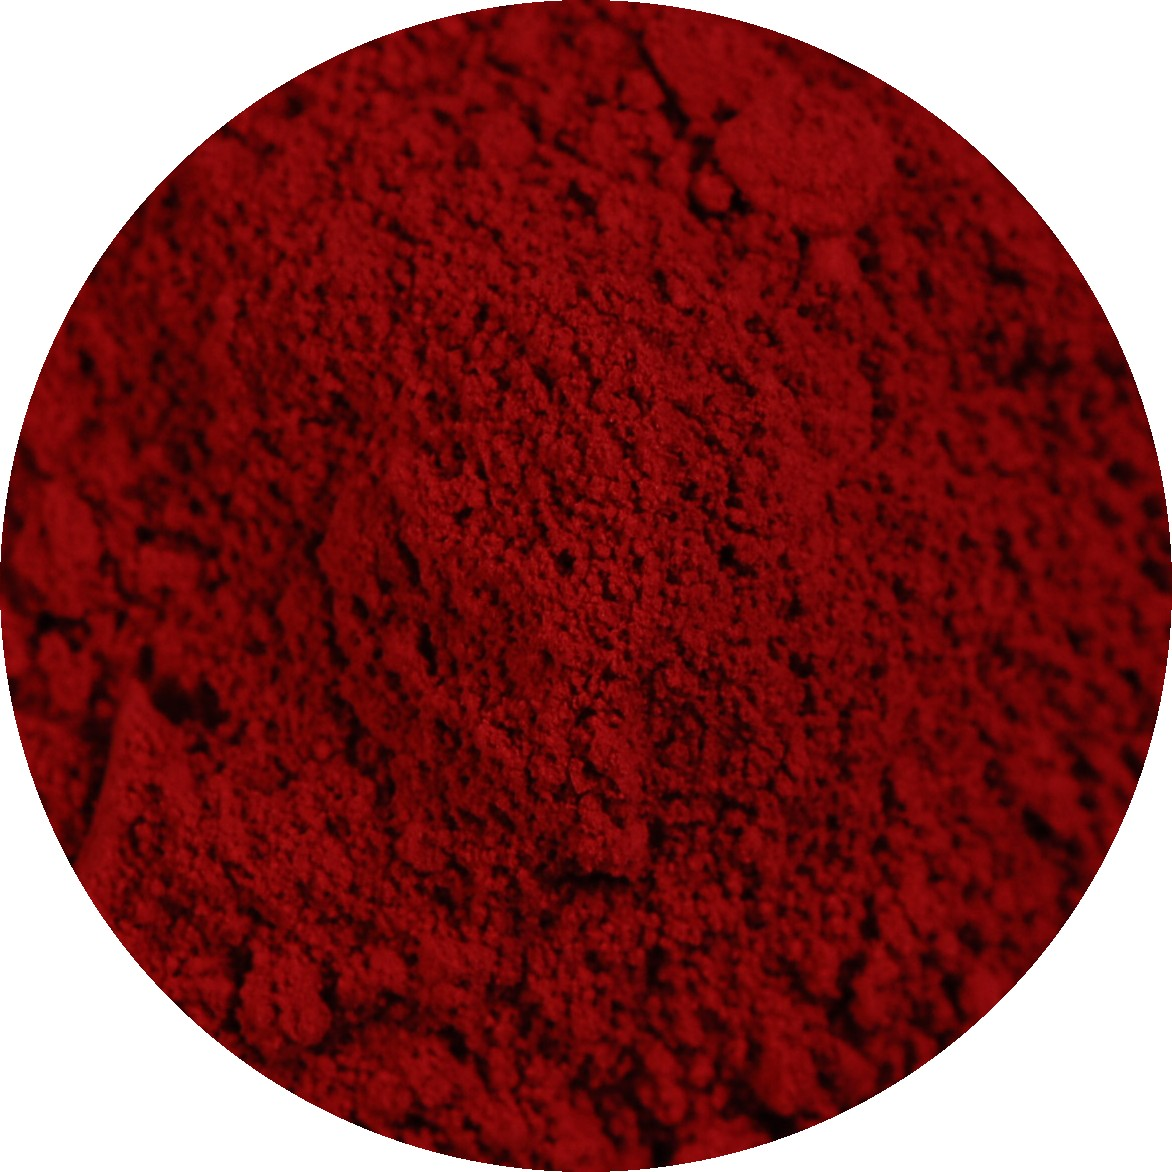 Colorant Rouge Synonyme acide carminique — wikipédia